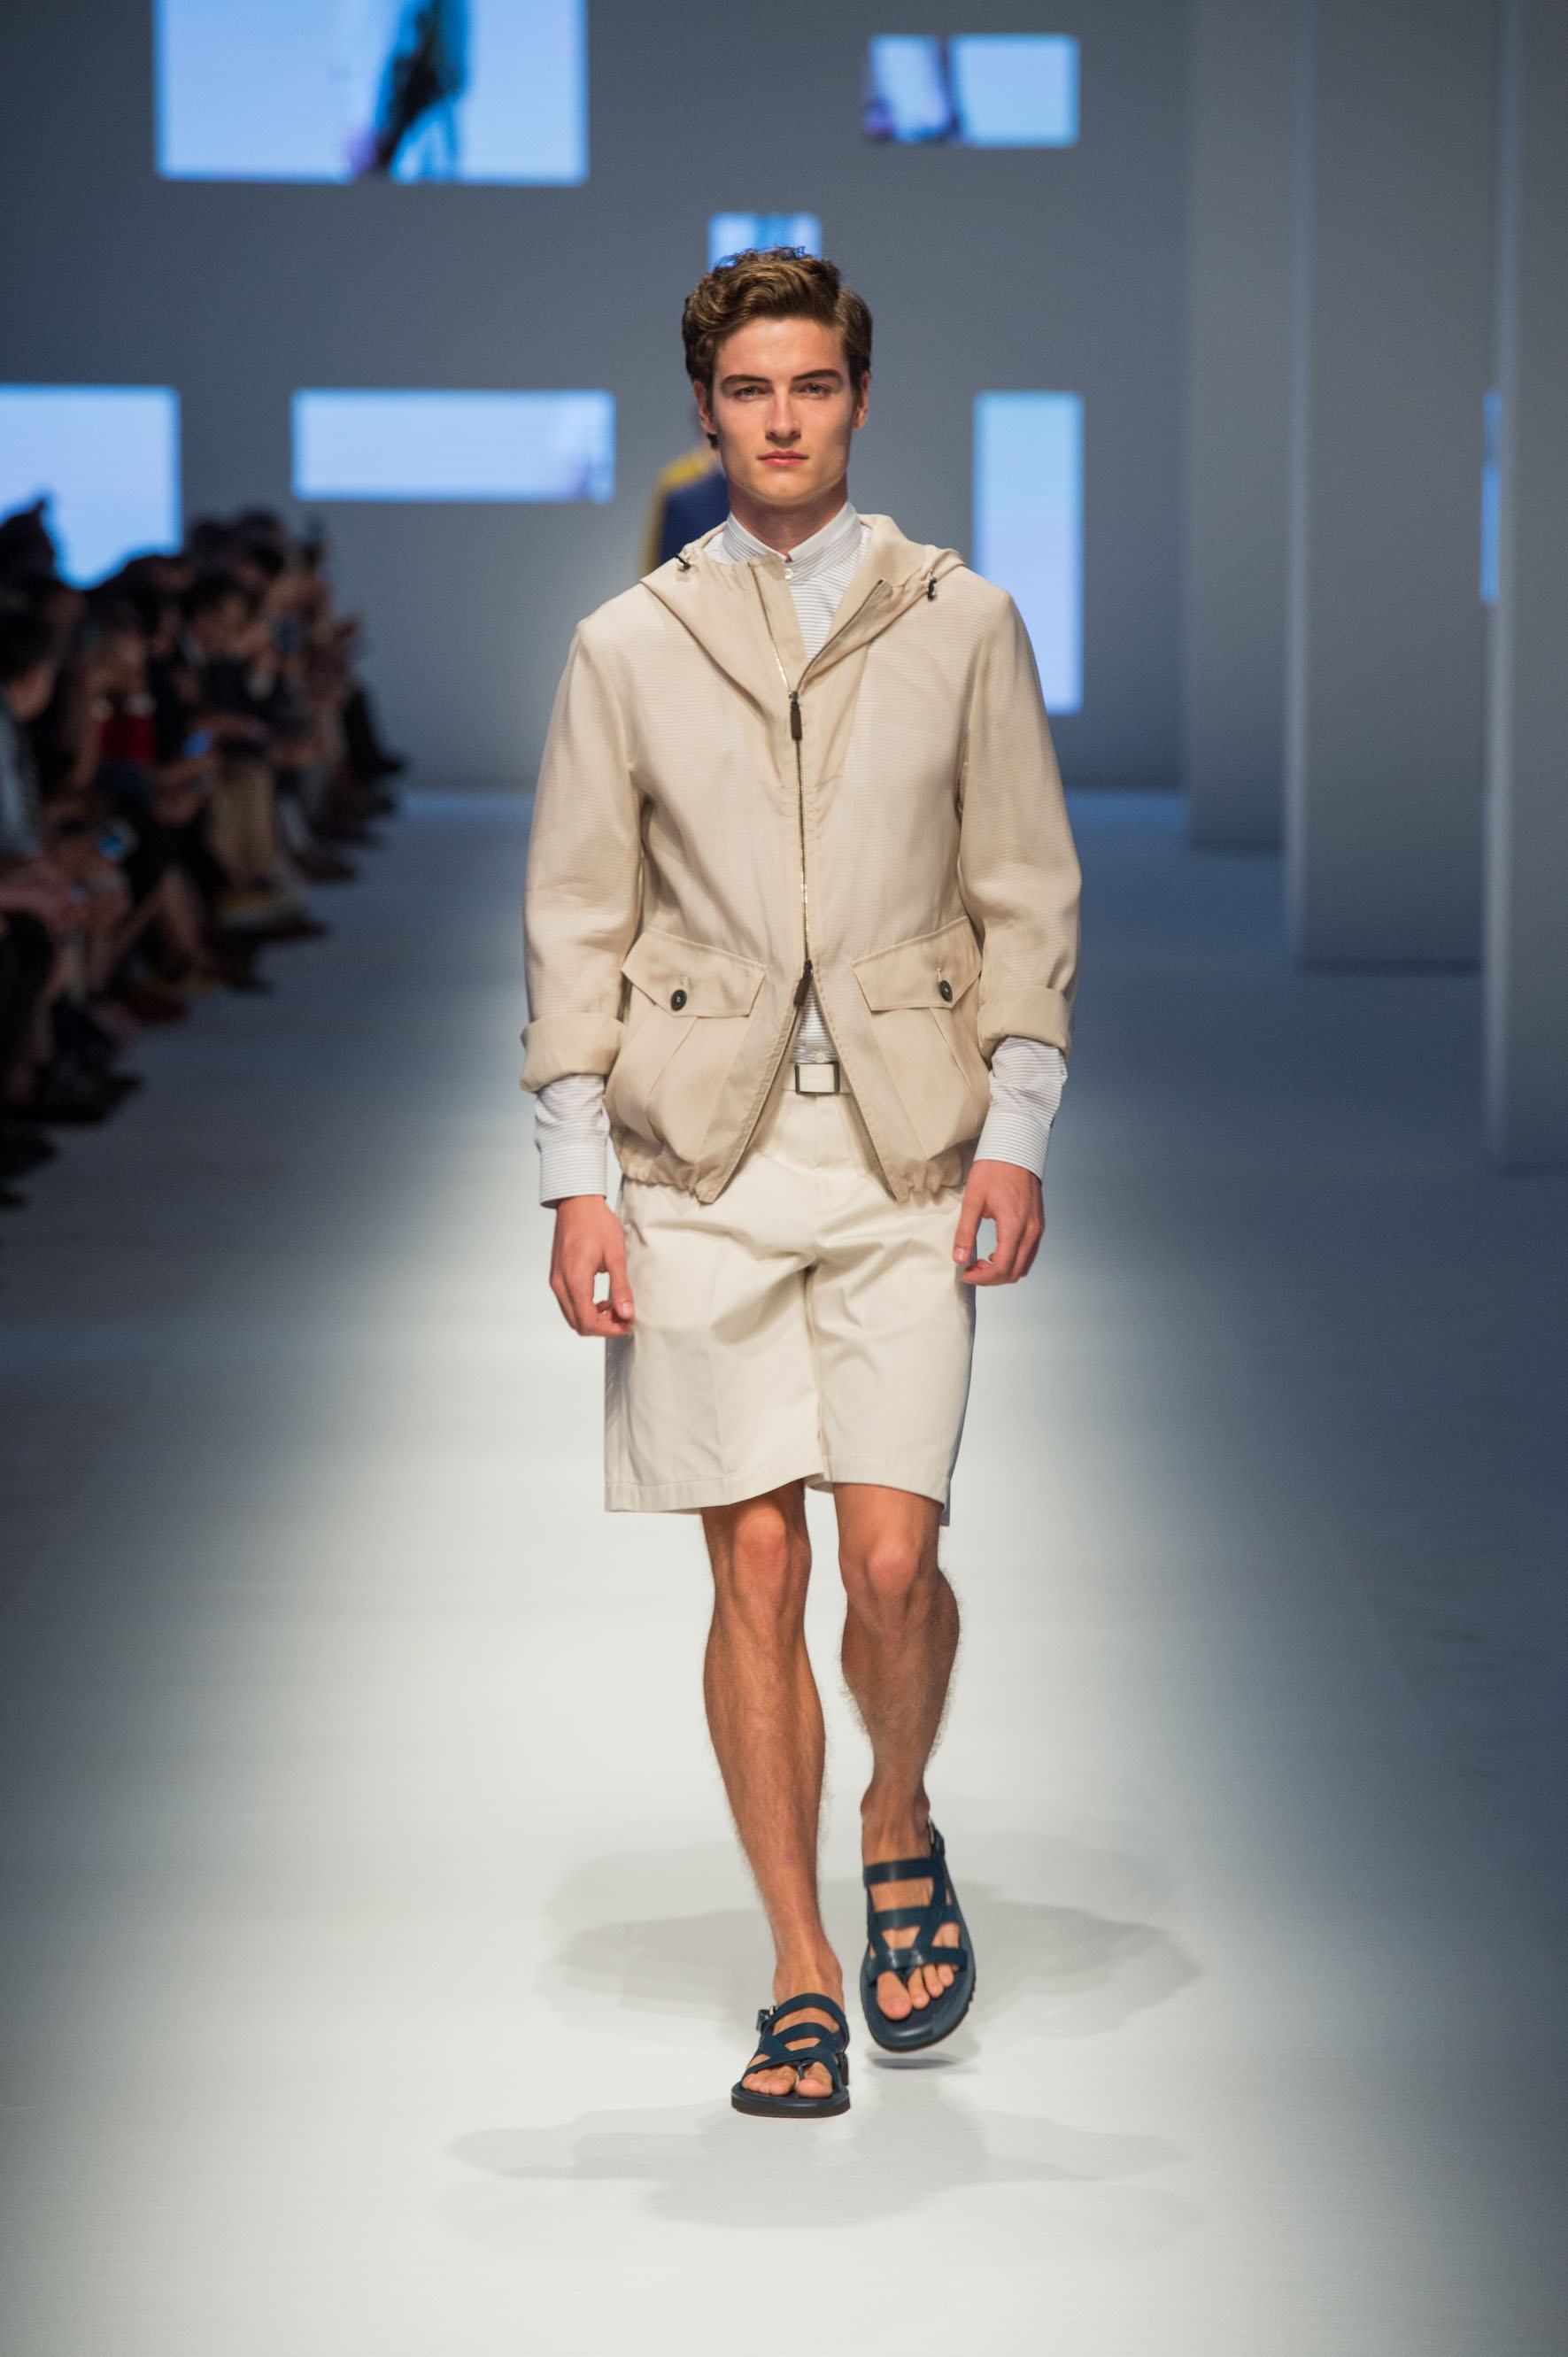 Jacket with fixed hood and bellows pockets, shorts with removable belt, double-layer dress shirt, calfskin sandals